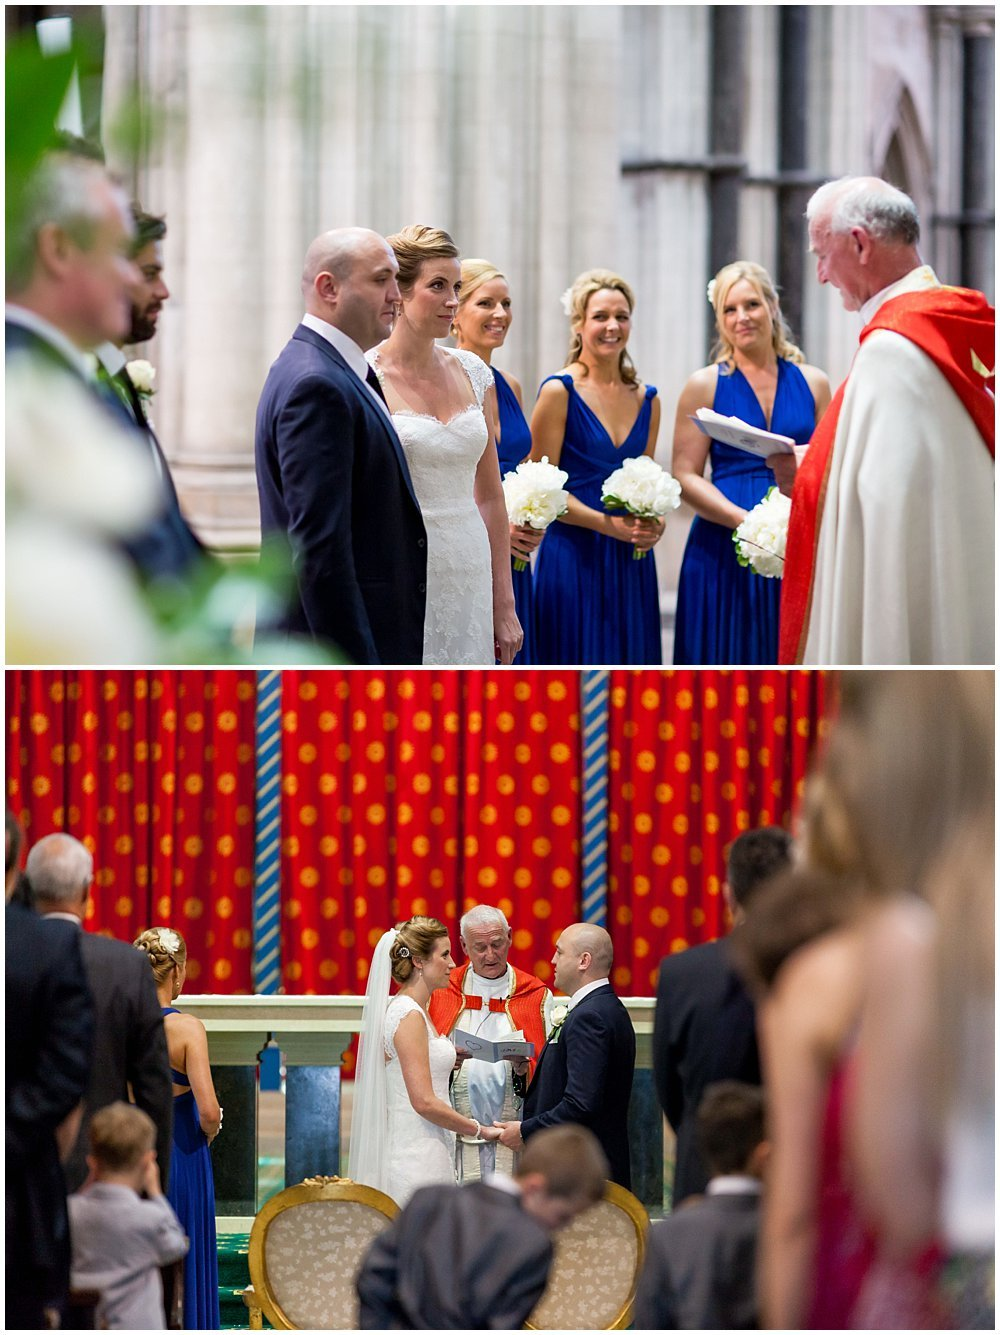 AMY AND DUNCAN NORWICH CATHEDRAL AND THE BOATHOUSE WEDDING - NORWICH AND NORFOLK WEDDING PHOTOGRAPHER 12